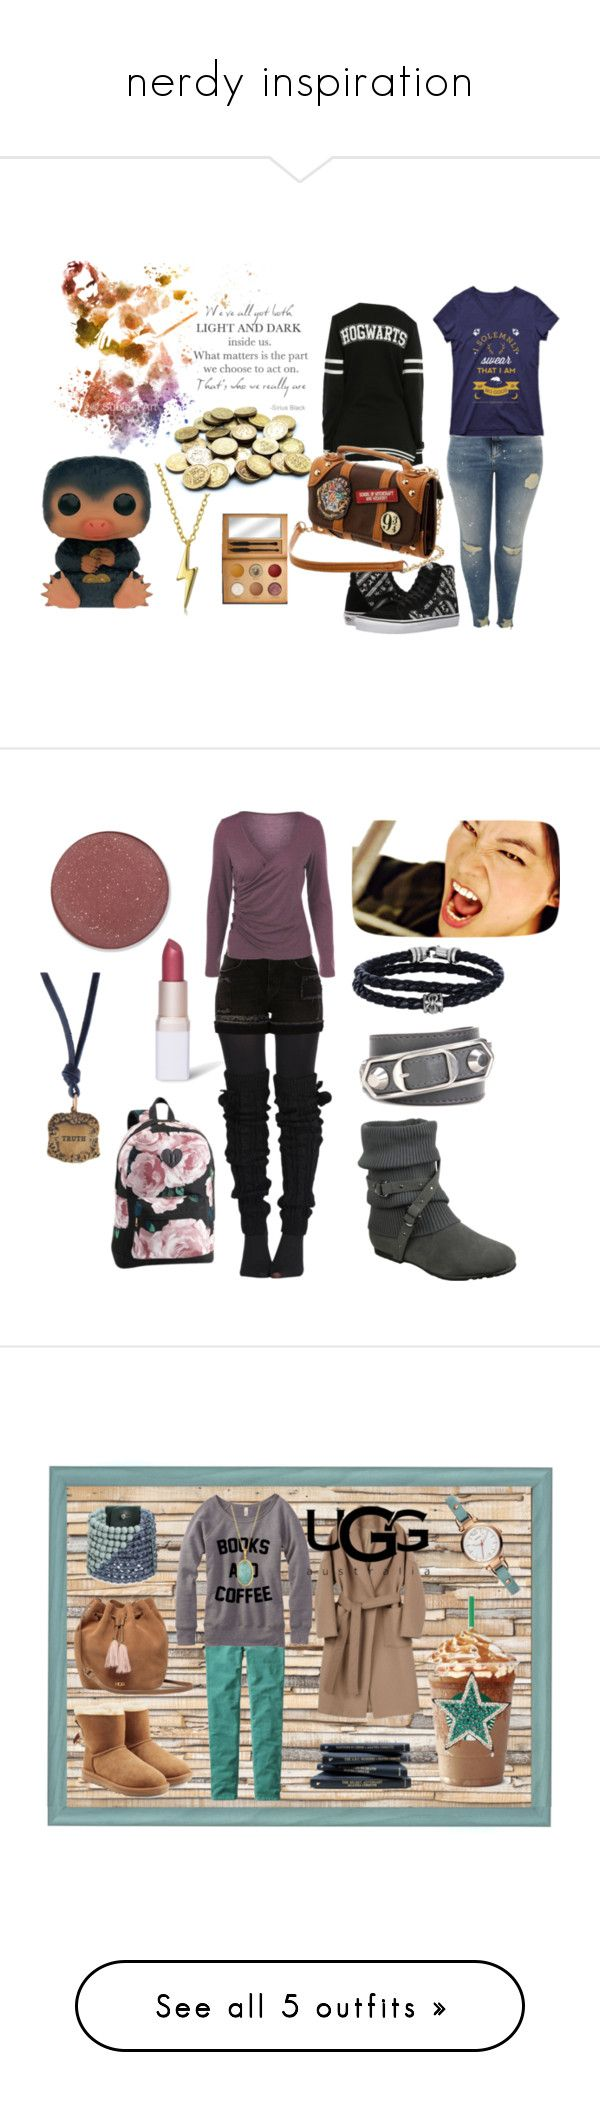 """""""nerdy inspiration"""" by amelie-frojd on Polyvore featuring Sirius, Funko, River Island, Bling Jewelry, Warner Bros., Vans, Generation Y, Balenciaga, Phillip Gavriel and Catherine Michiels"""